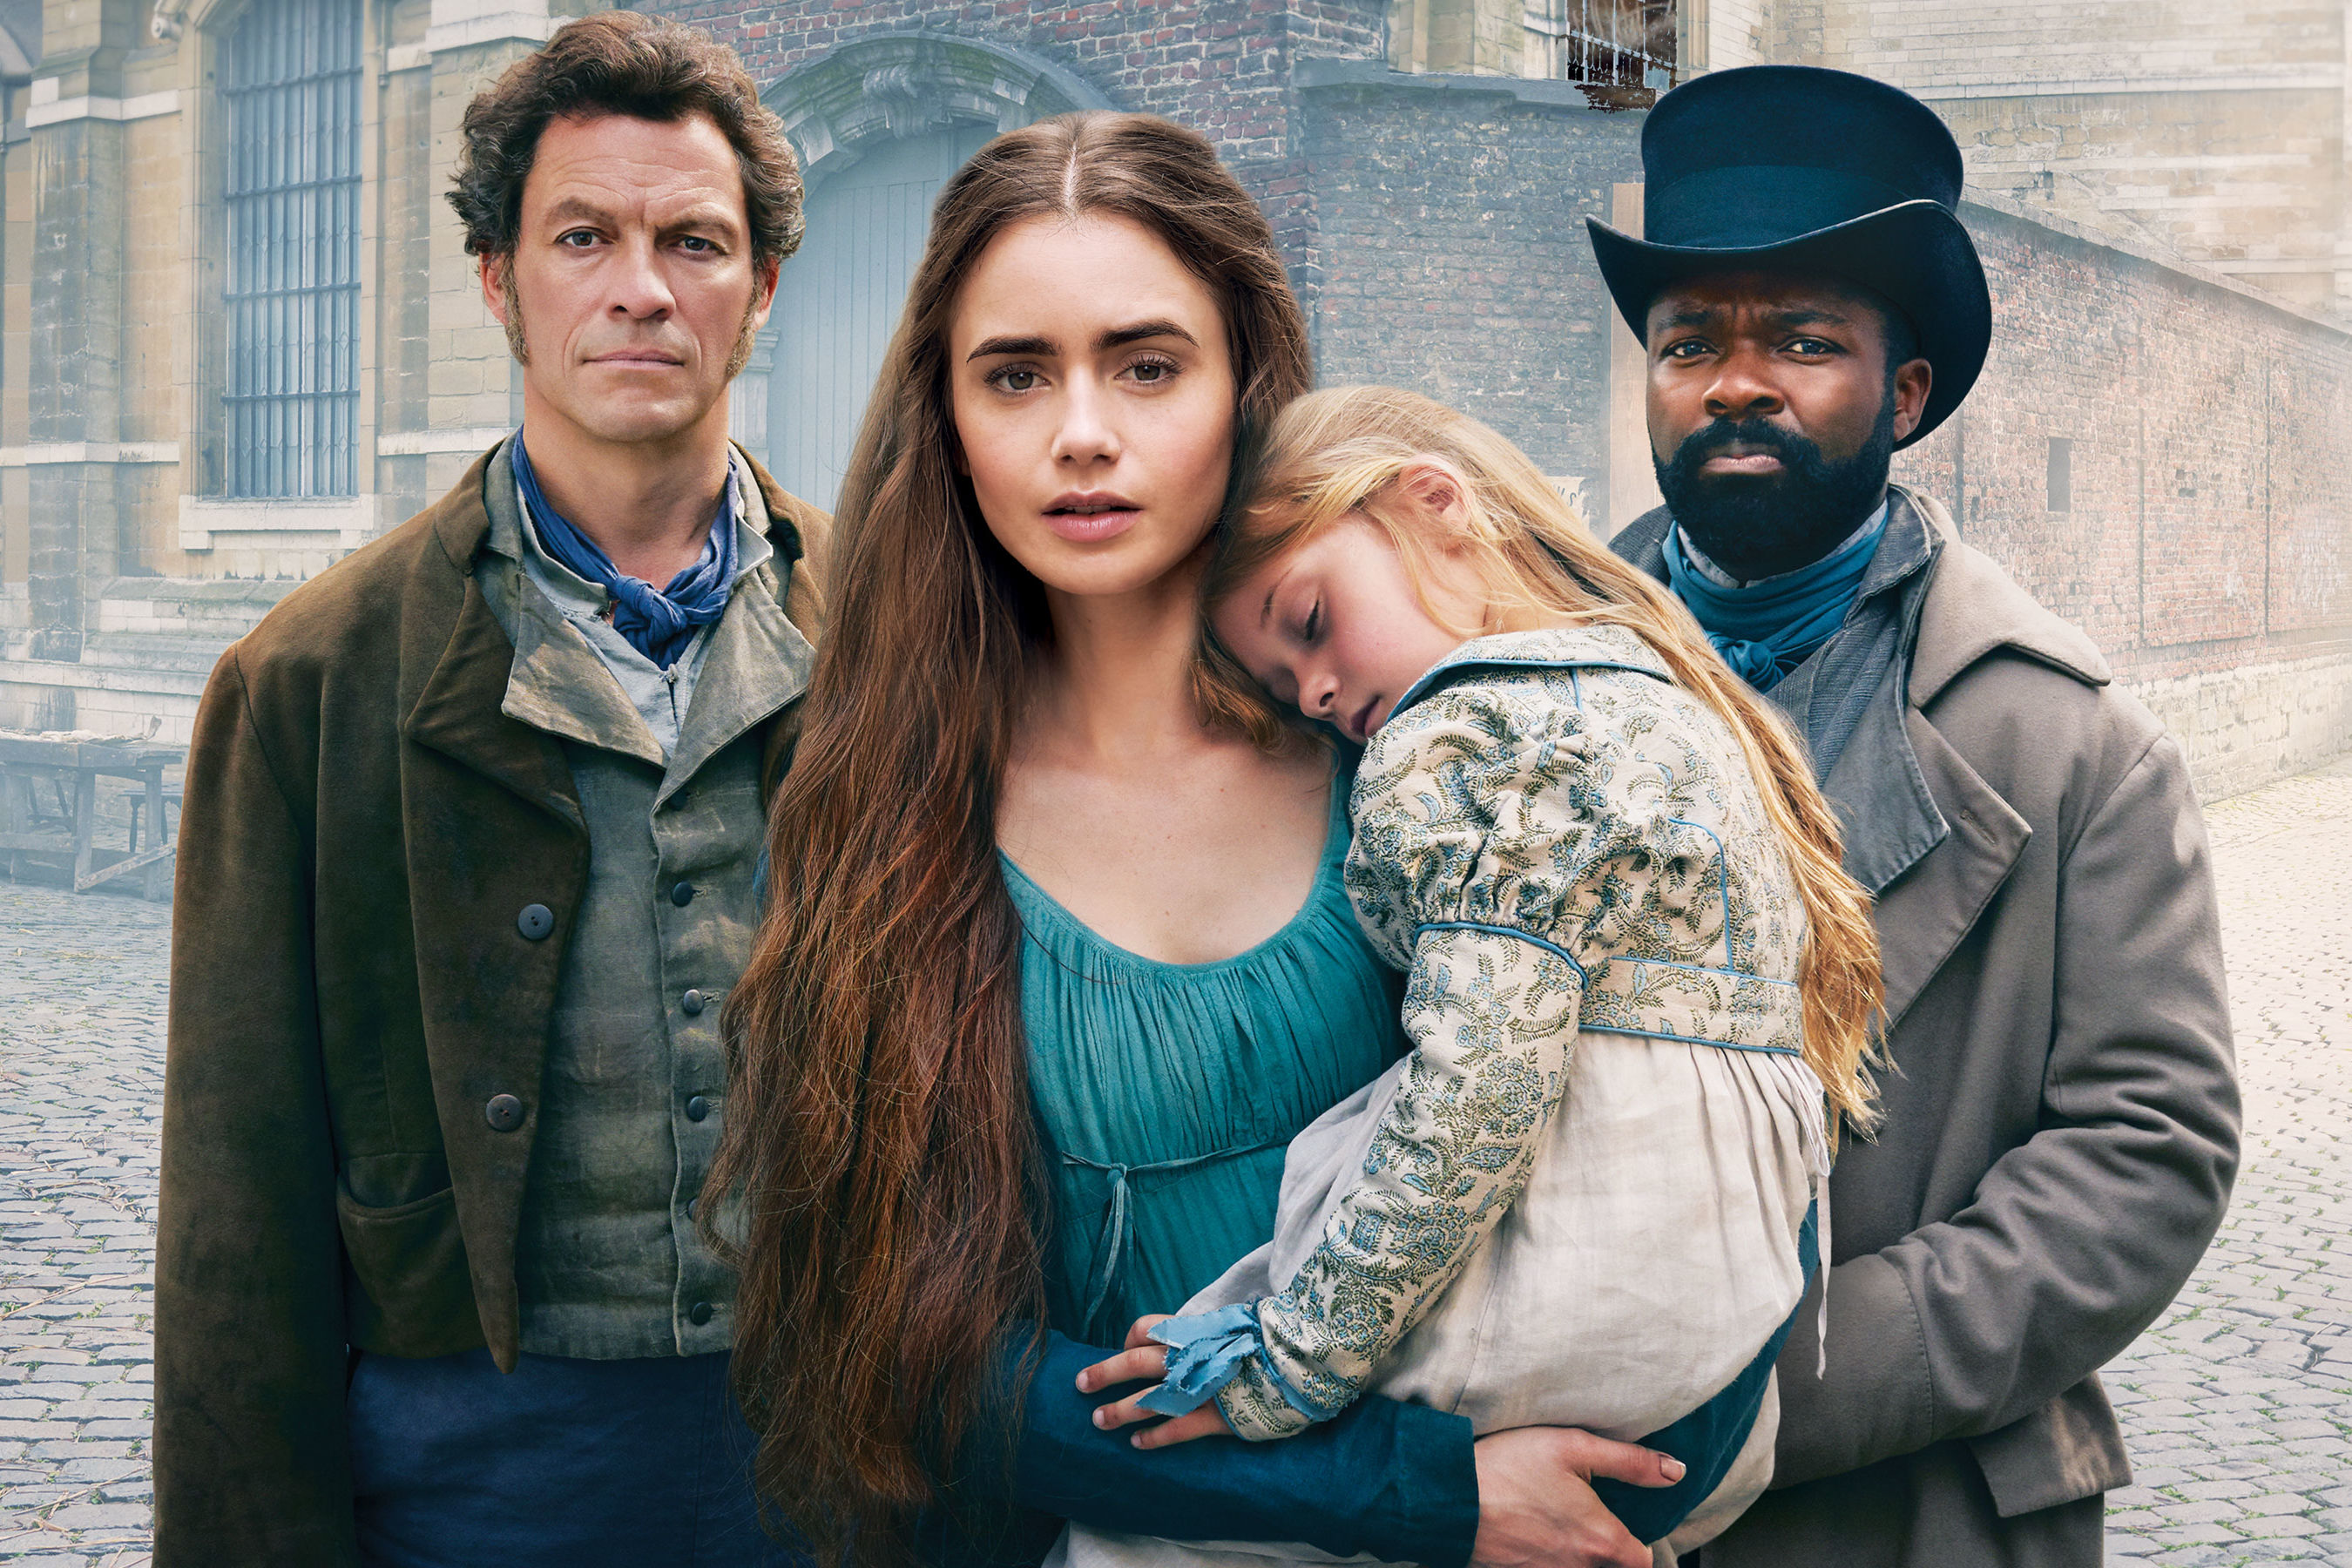 See New Photos of the PBS Les Misérables Cast Ahead of the Sunday Premiere